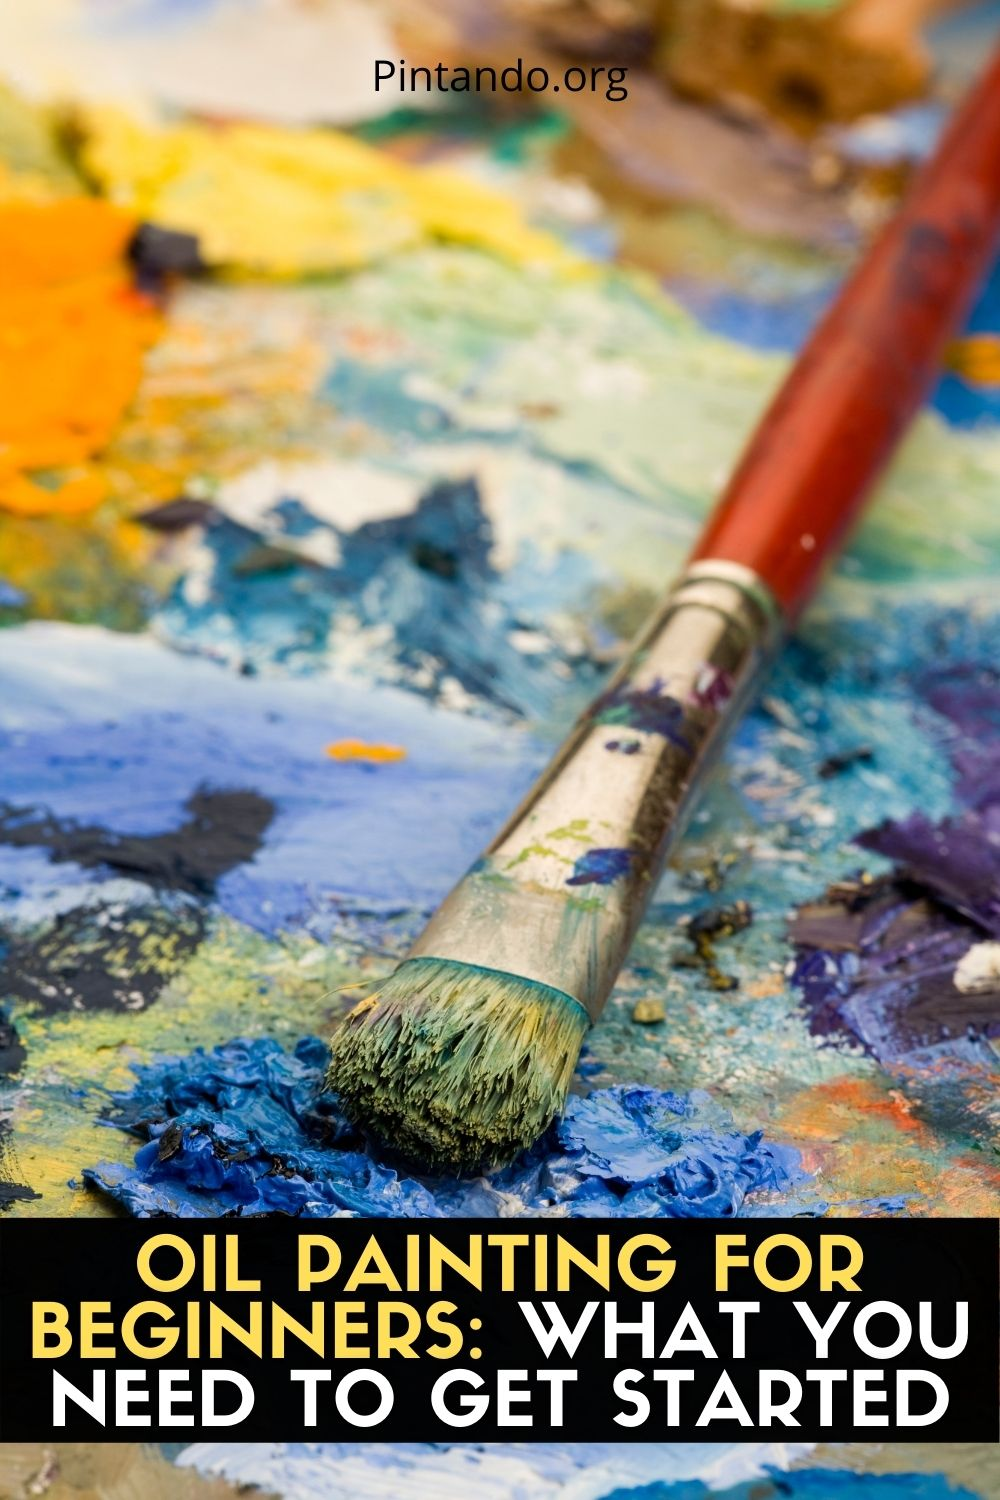 OIL PAINTING FOR BEGINNERS WHAT YOU NEED TO GET STARTED